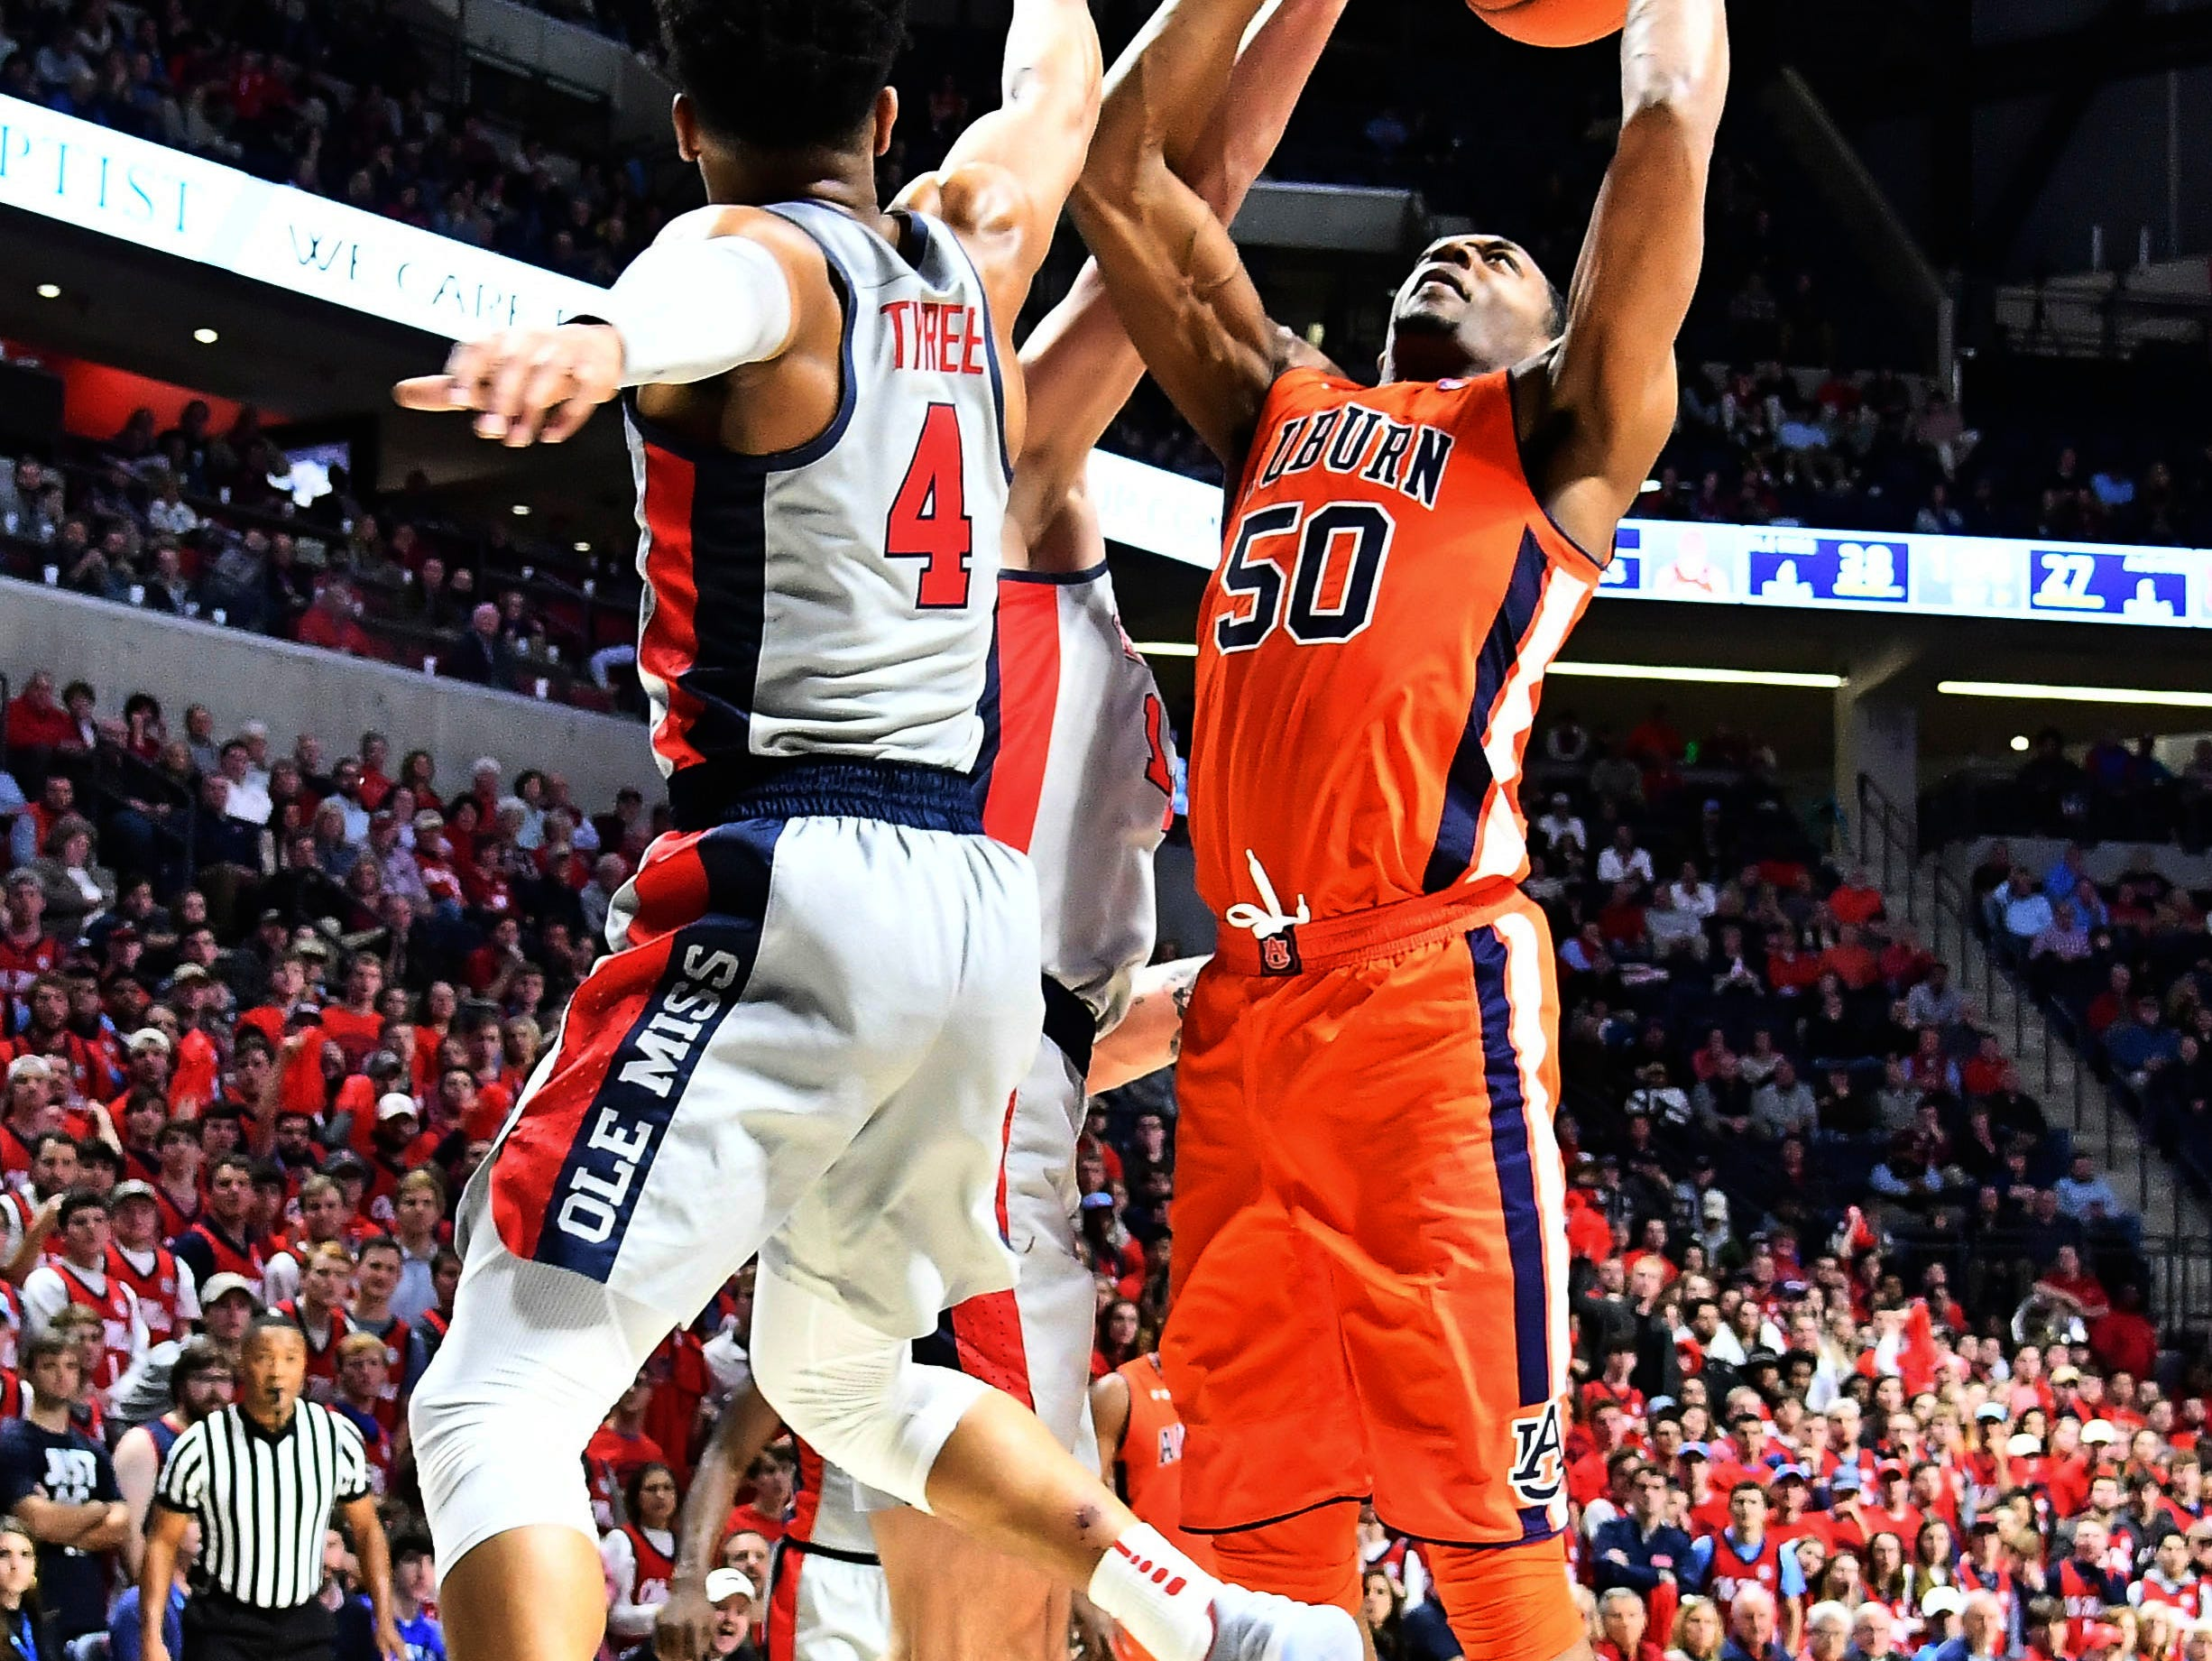 Jan 9, 2019; Oxford, MS, USA; Auburn Tigers center Austin Wiley (50) shoots defended by Mississippi Rebels guard Breein Tyree (4) during the first quarter at The Pavilion at Ole Miss. Mandatory Credit: Matt Bush-USA TODAY Sports